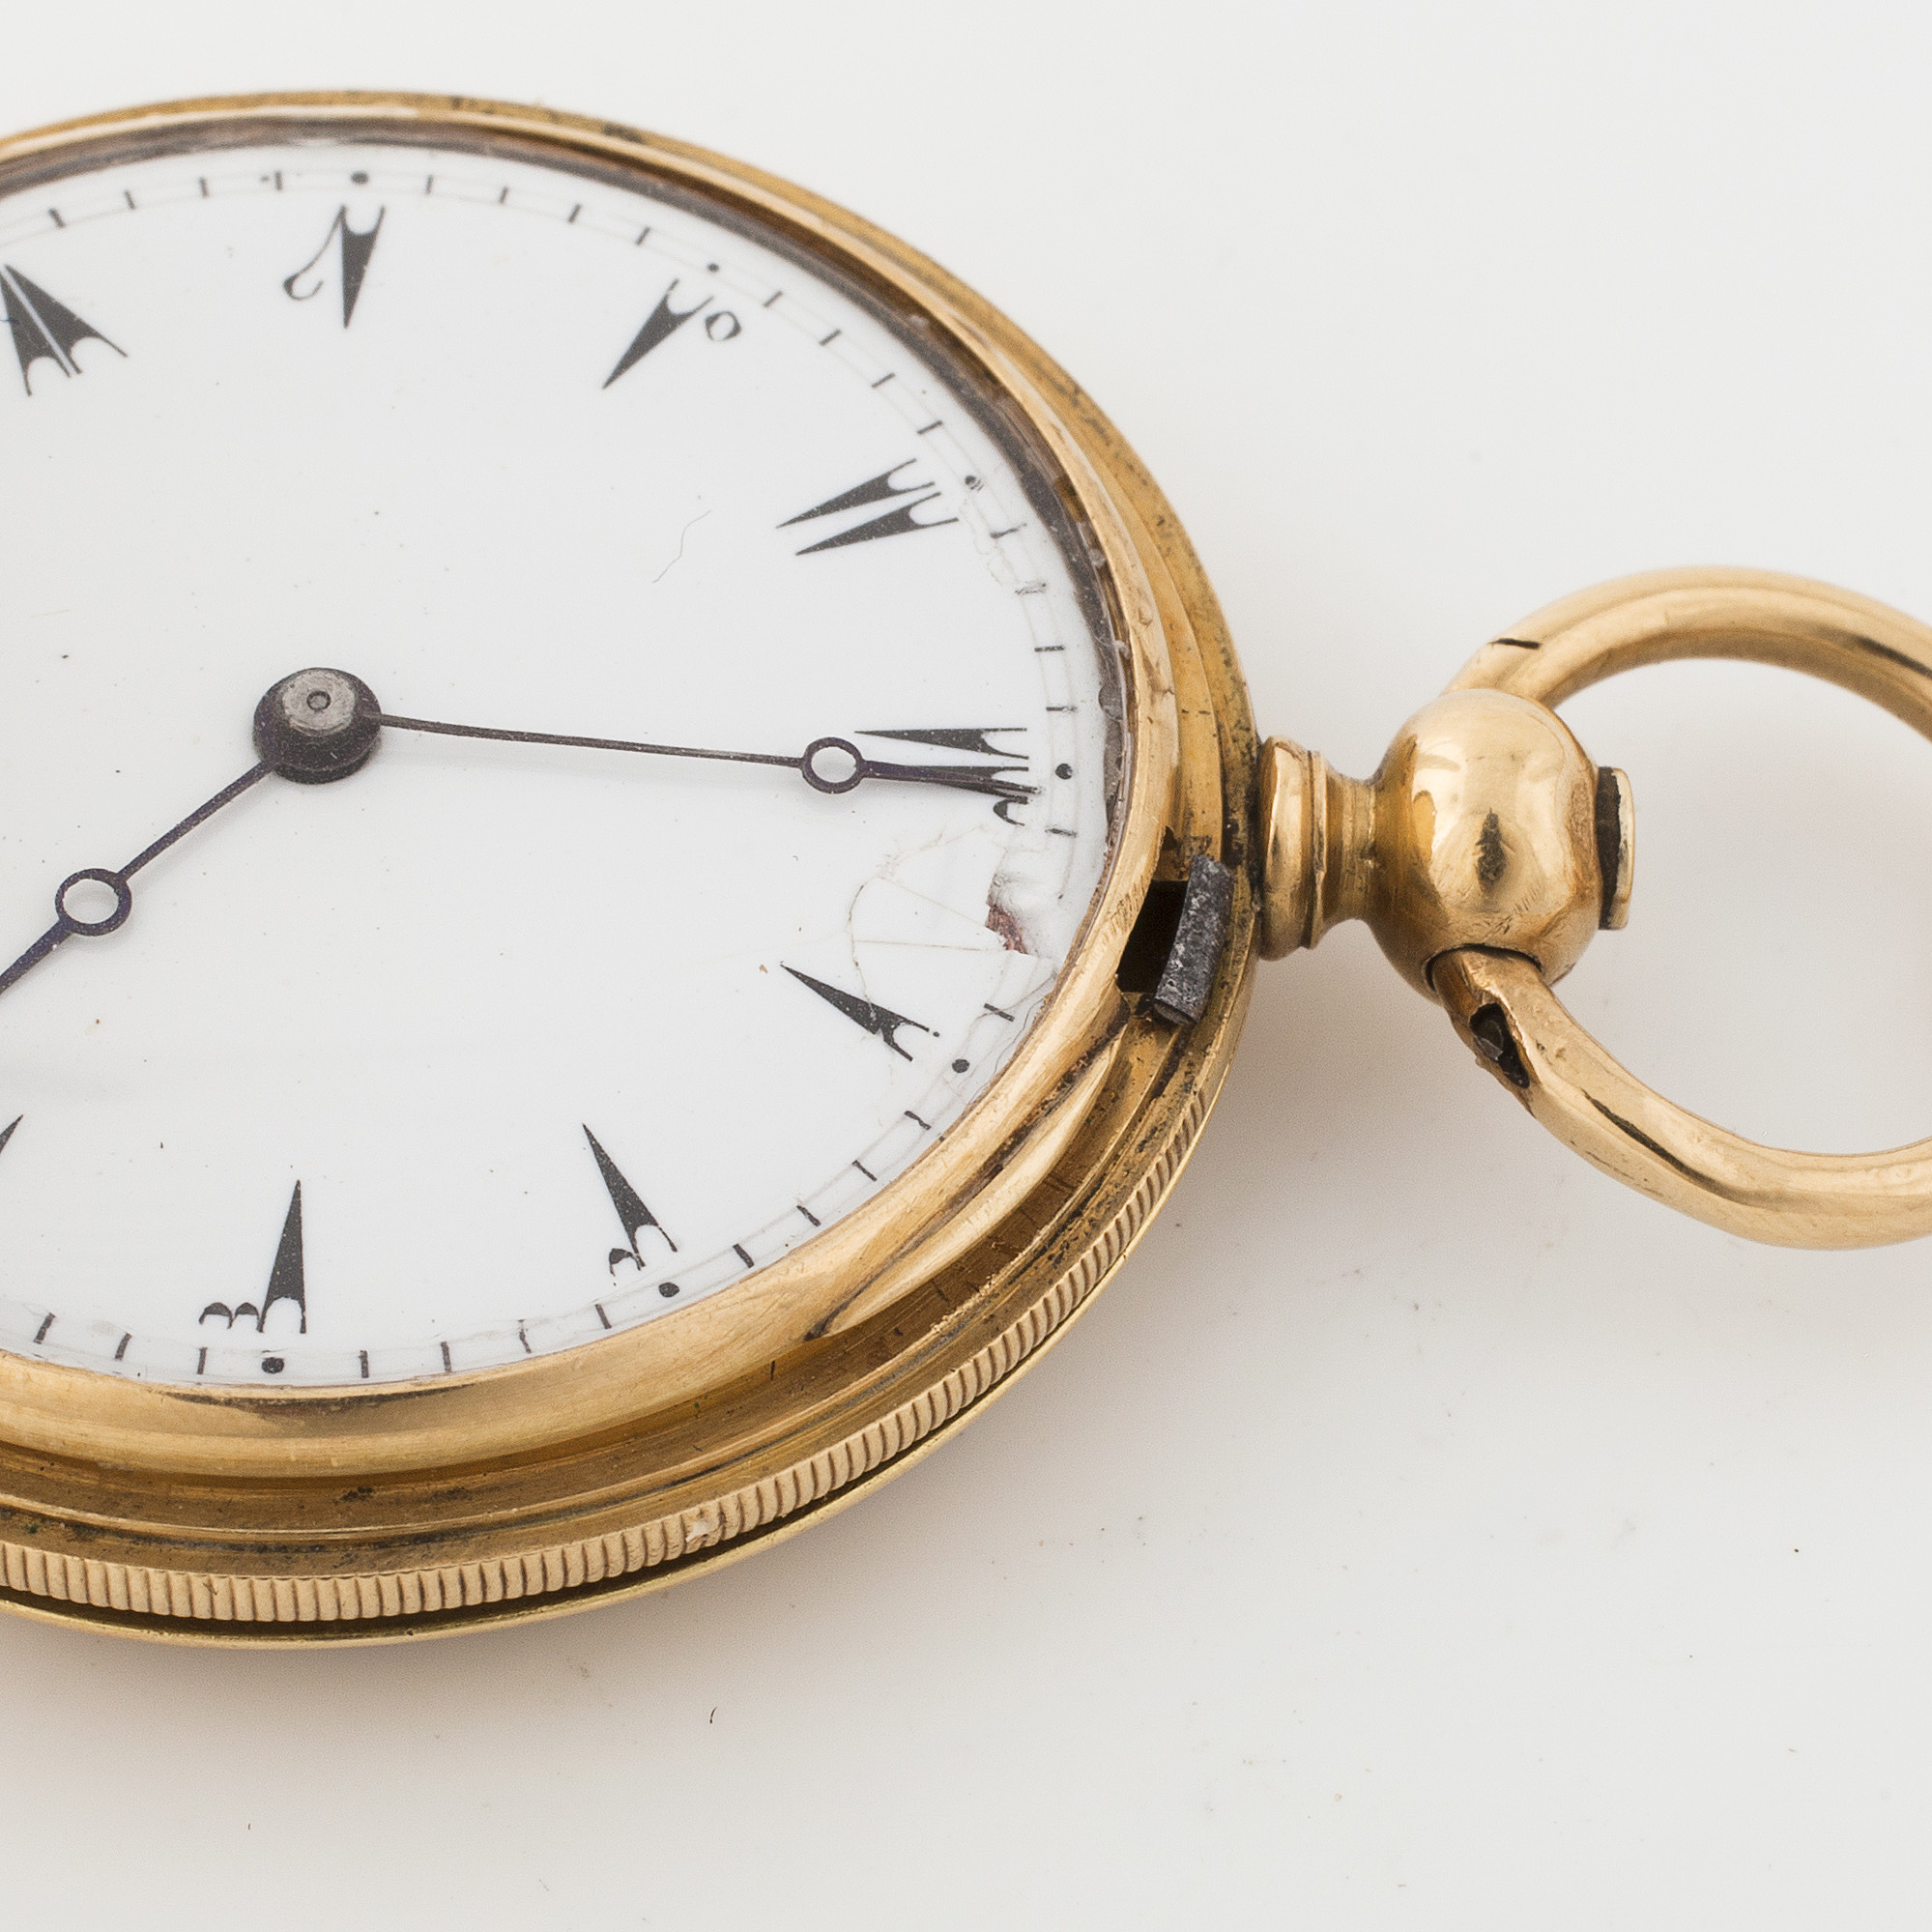 DUMONT GUINAND, CHAUX-DE-FONDS, hunting cased pocket watch